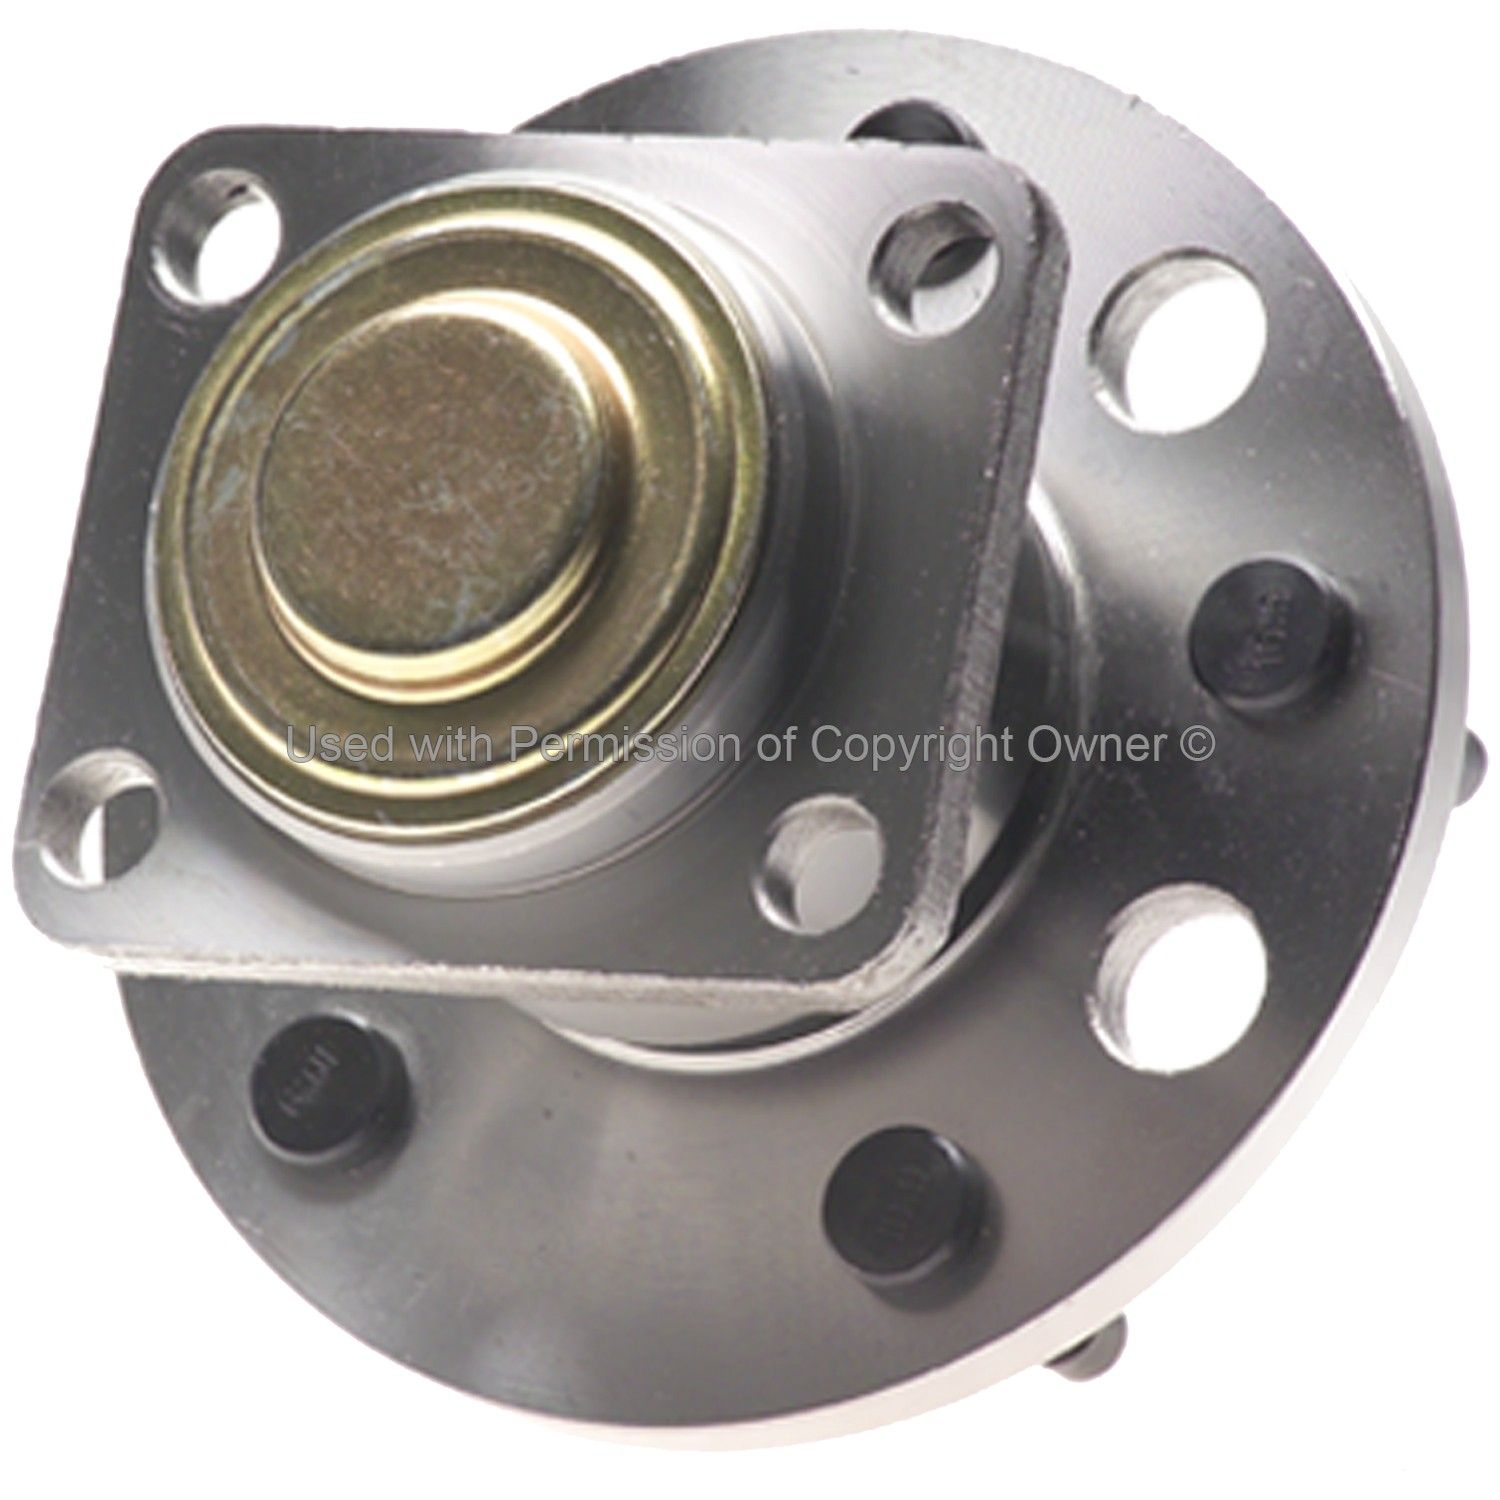 Buick Lacrosse Wheel Bearing And Hub Assembly Replacement Acdelco 2005 Starter Location Rear Mpa Wh513018 Axle Nut Torque Spec N R